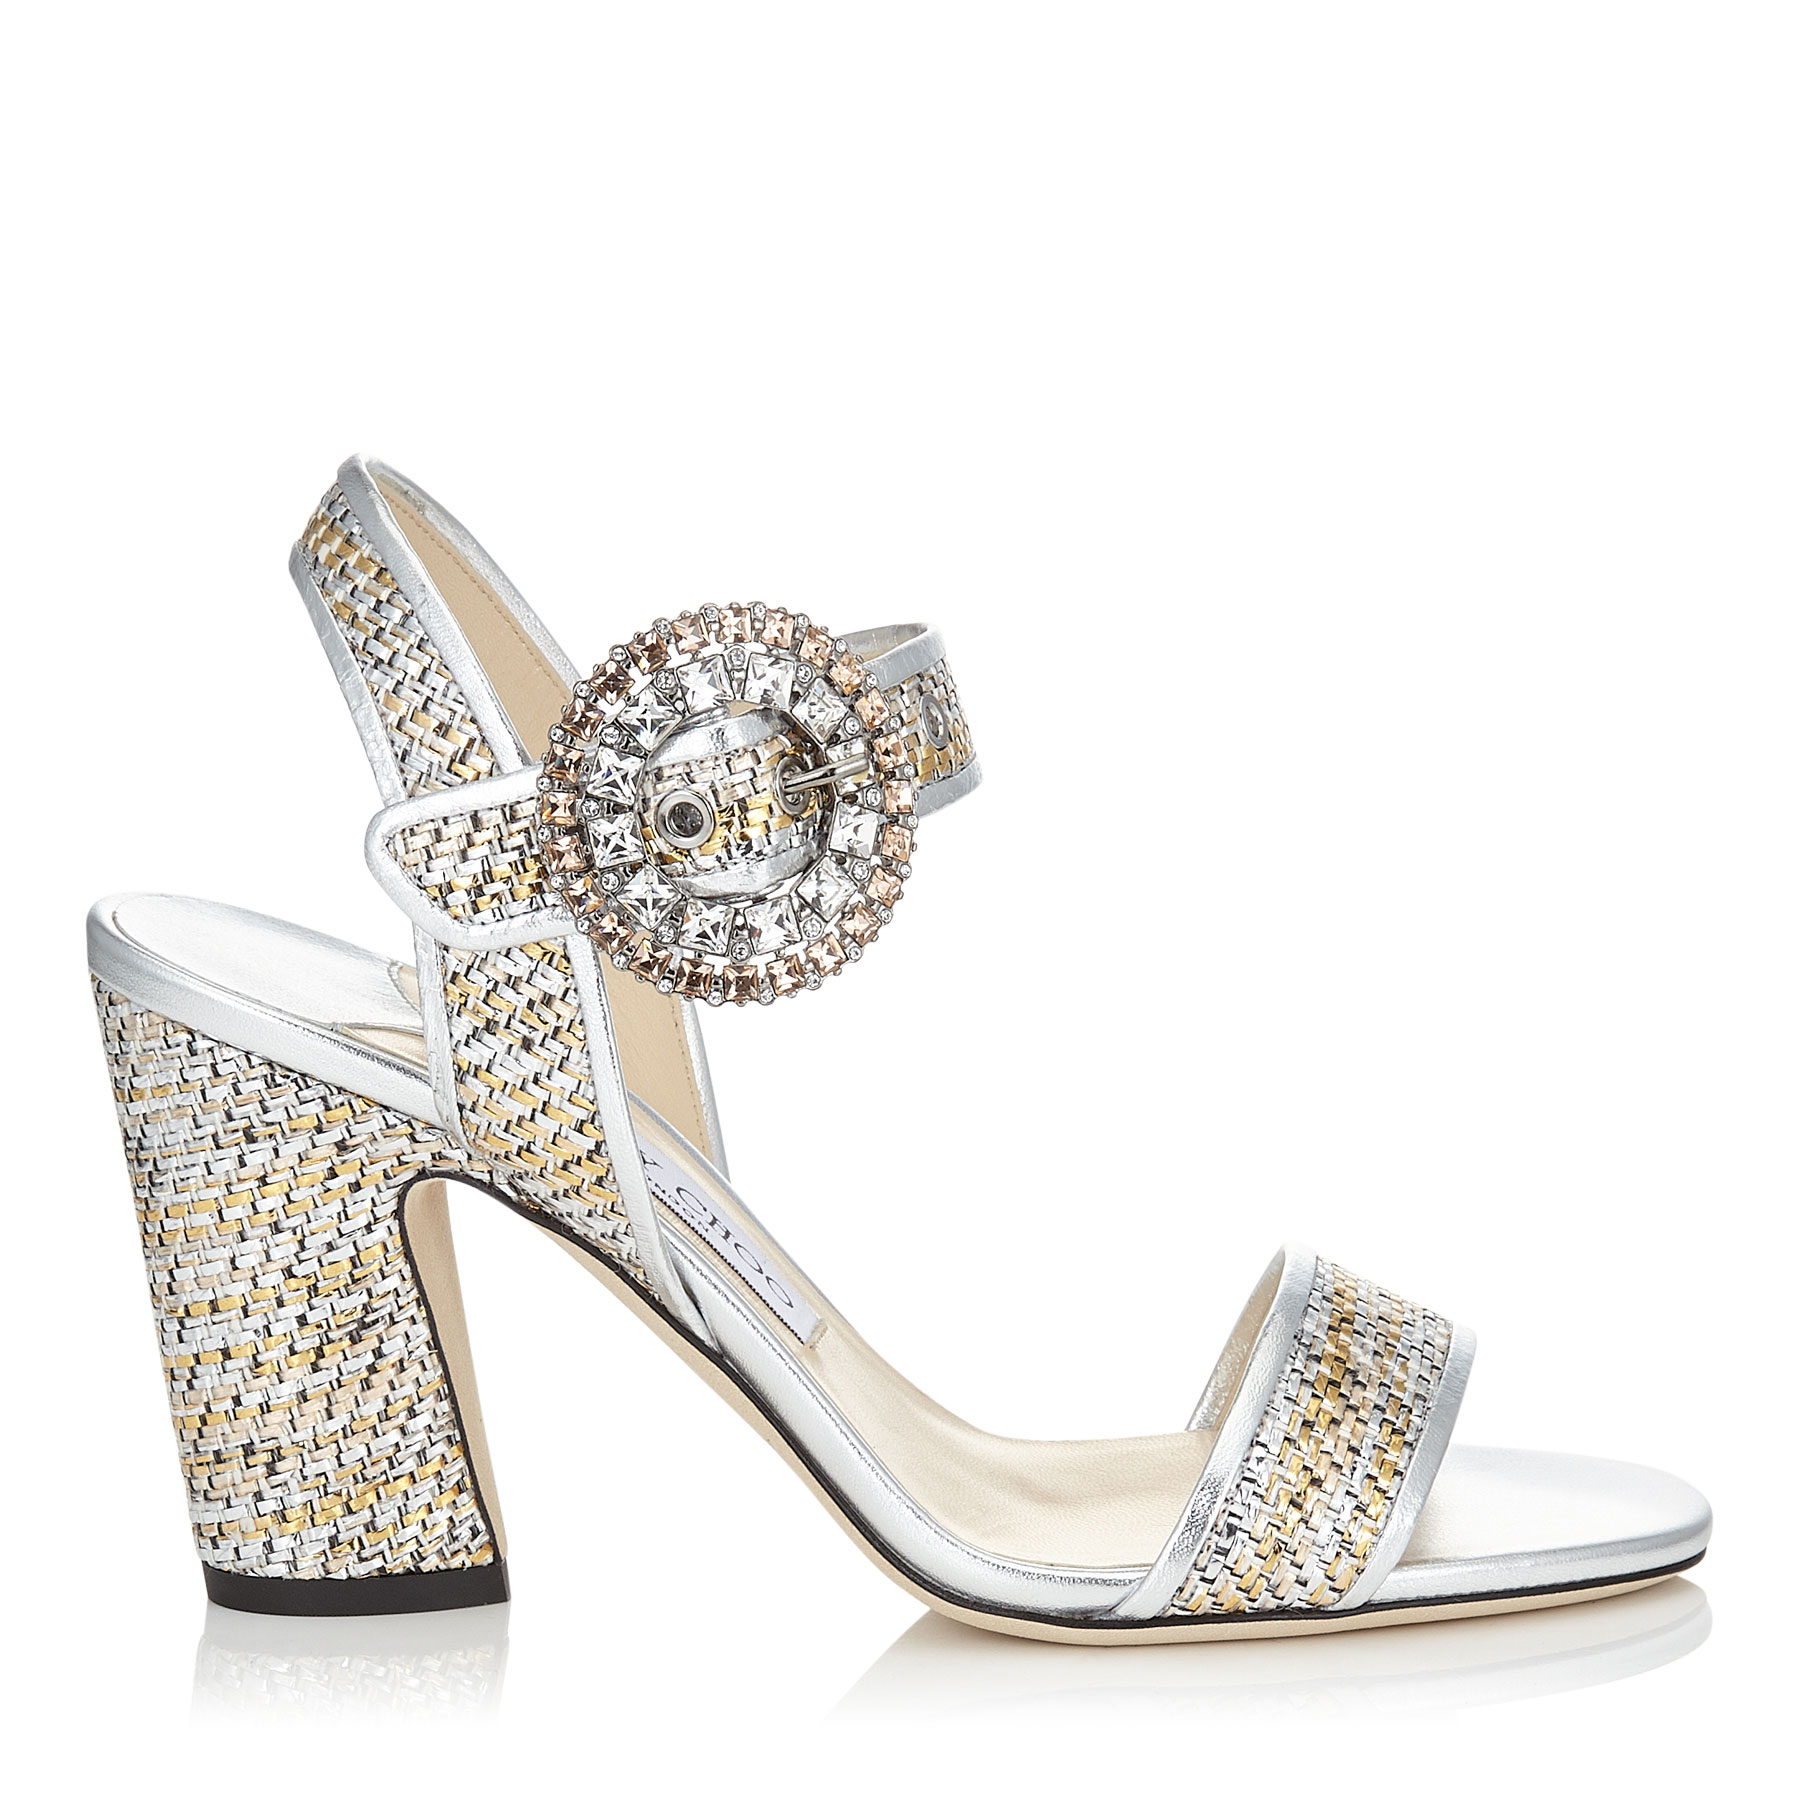 MISCHA 85 Silver Woven Metallic Fabric Slingback Sandals with Crystal Buckle by Jimmy Choo